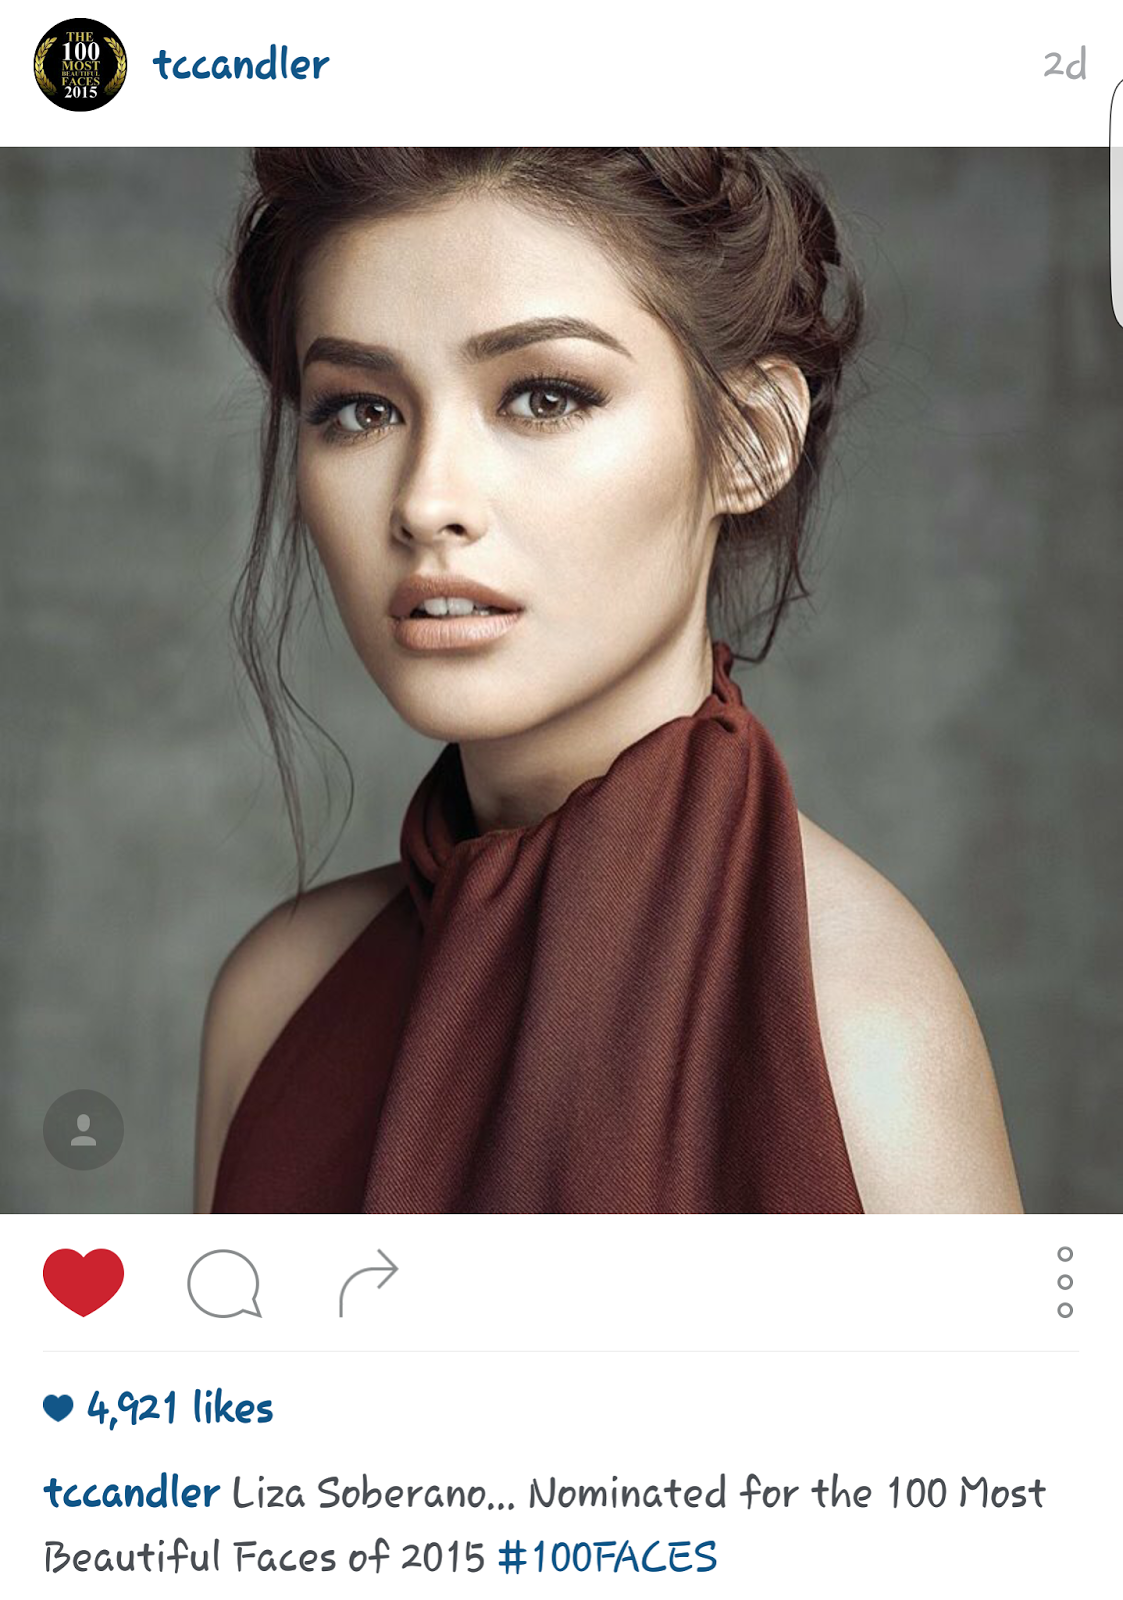 All about juan 187 liza soberano nominated for 100 most beautiful faces